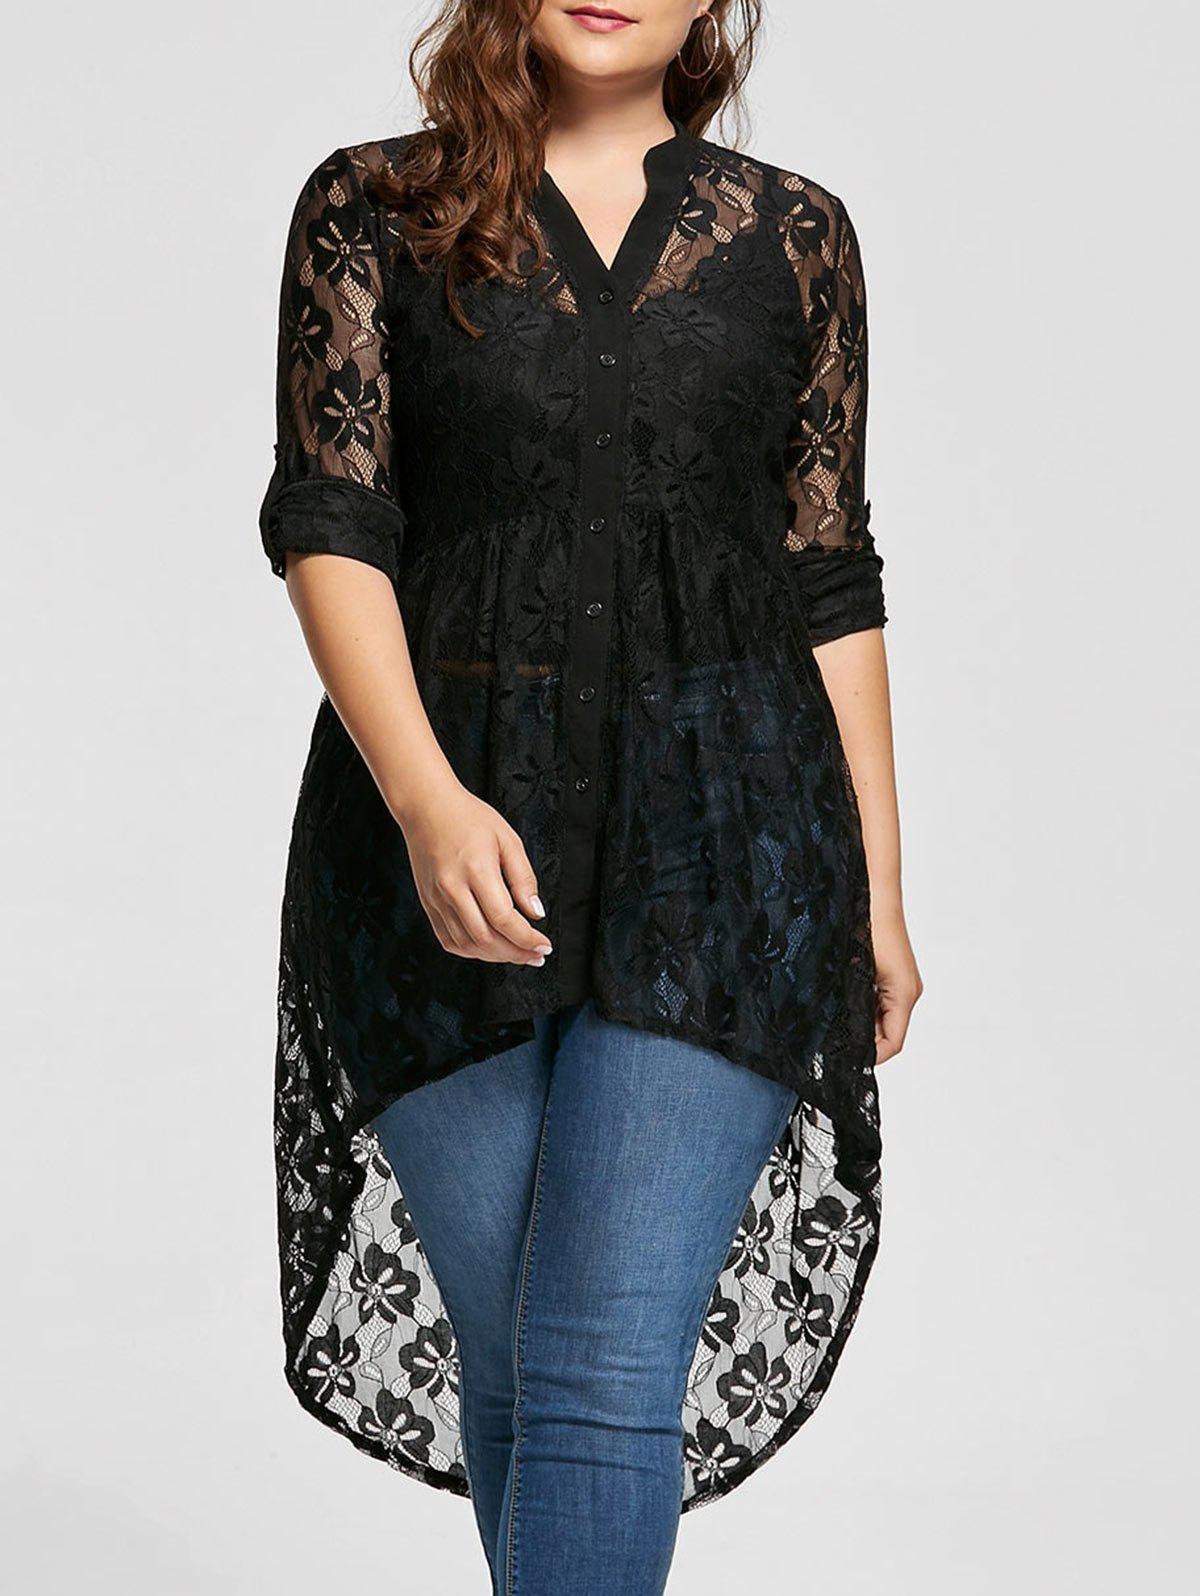 57ad352c68 41% OFF   2019 High Low Lace Long Sleeve Plus Size Top